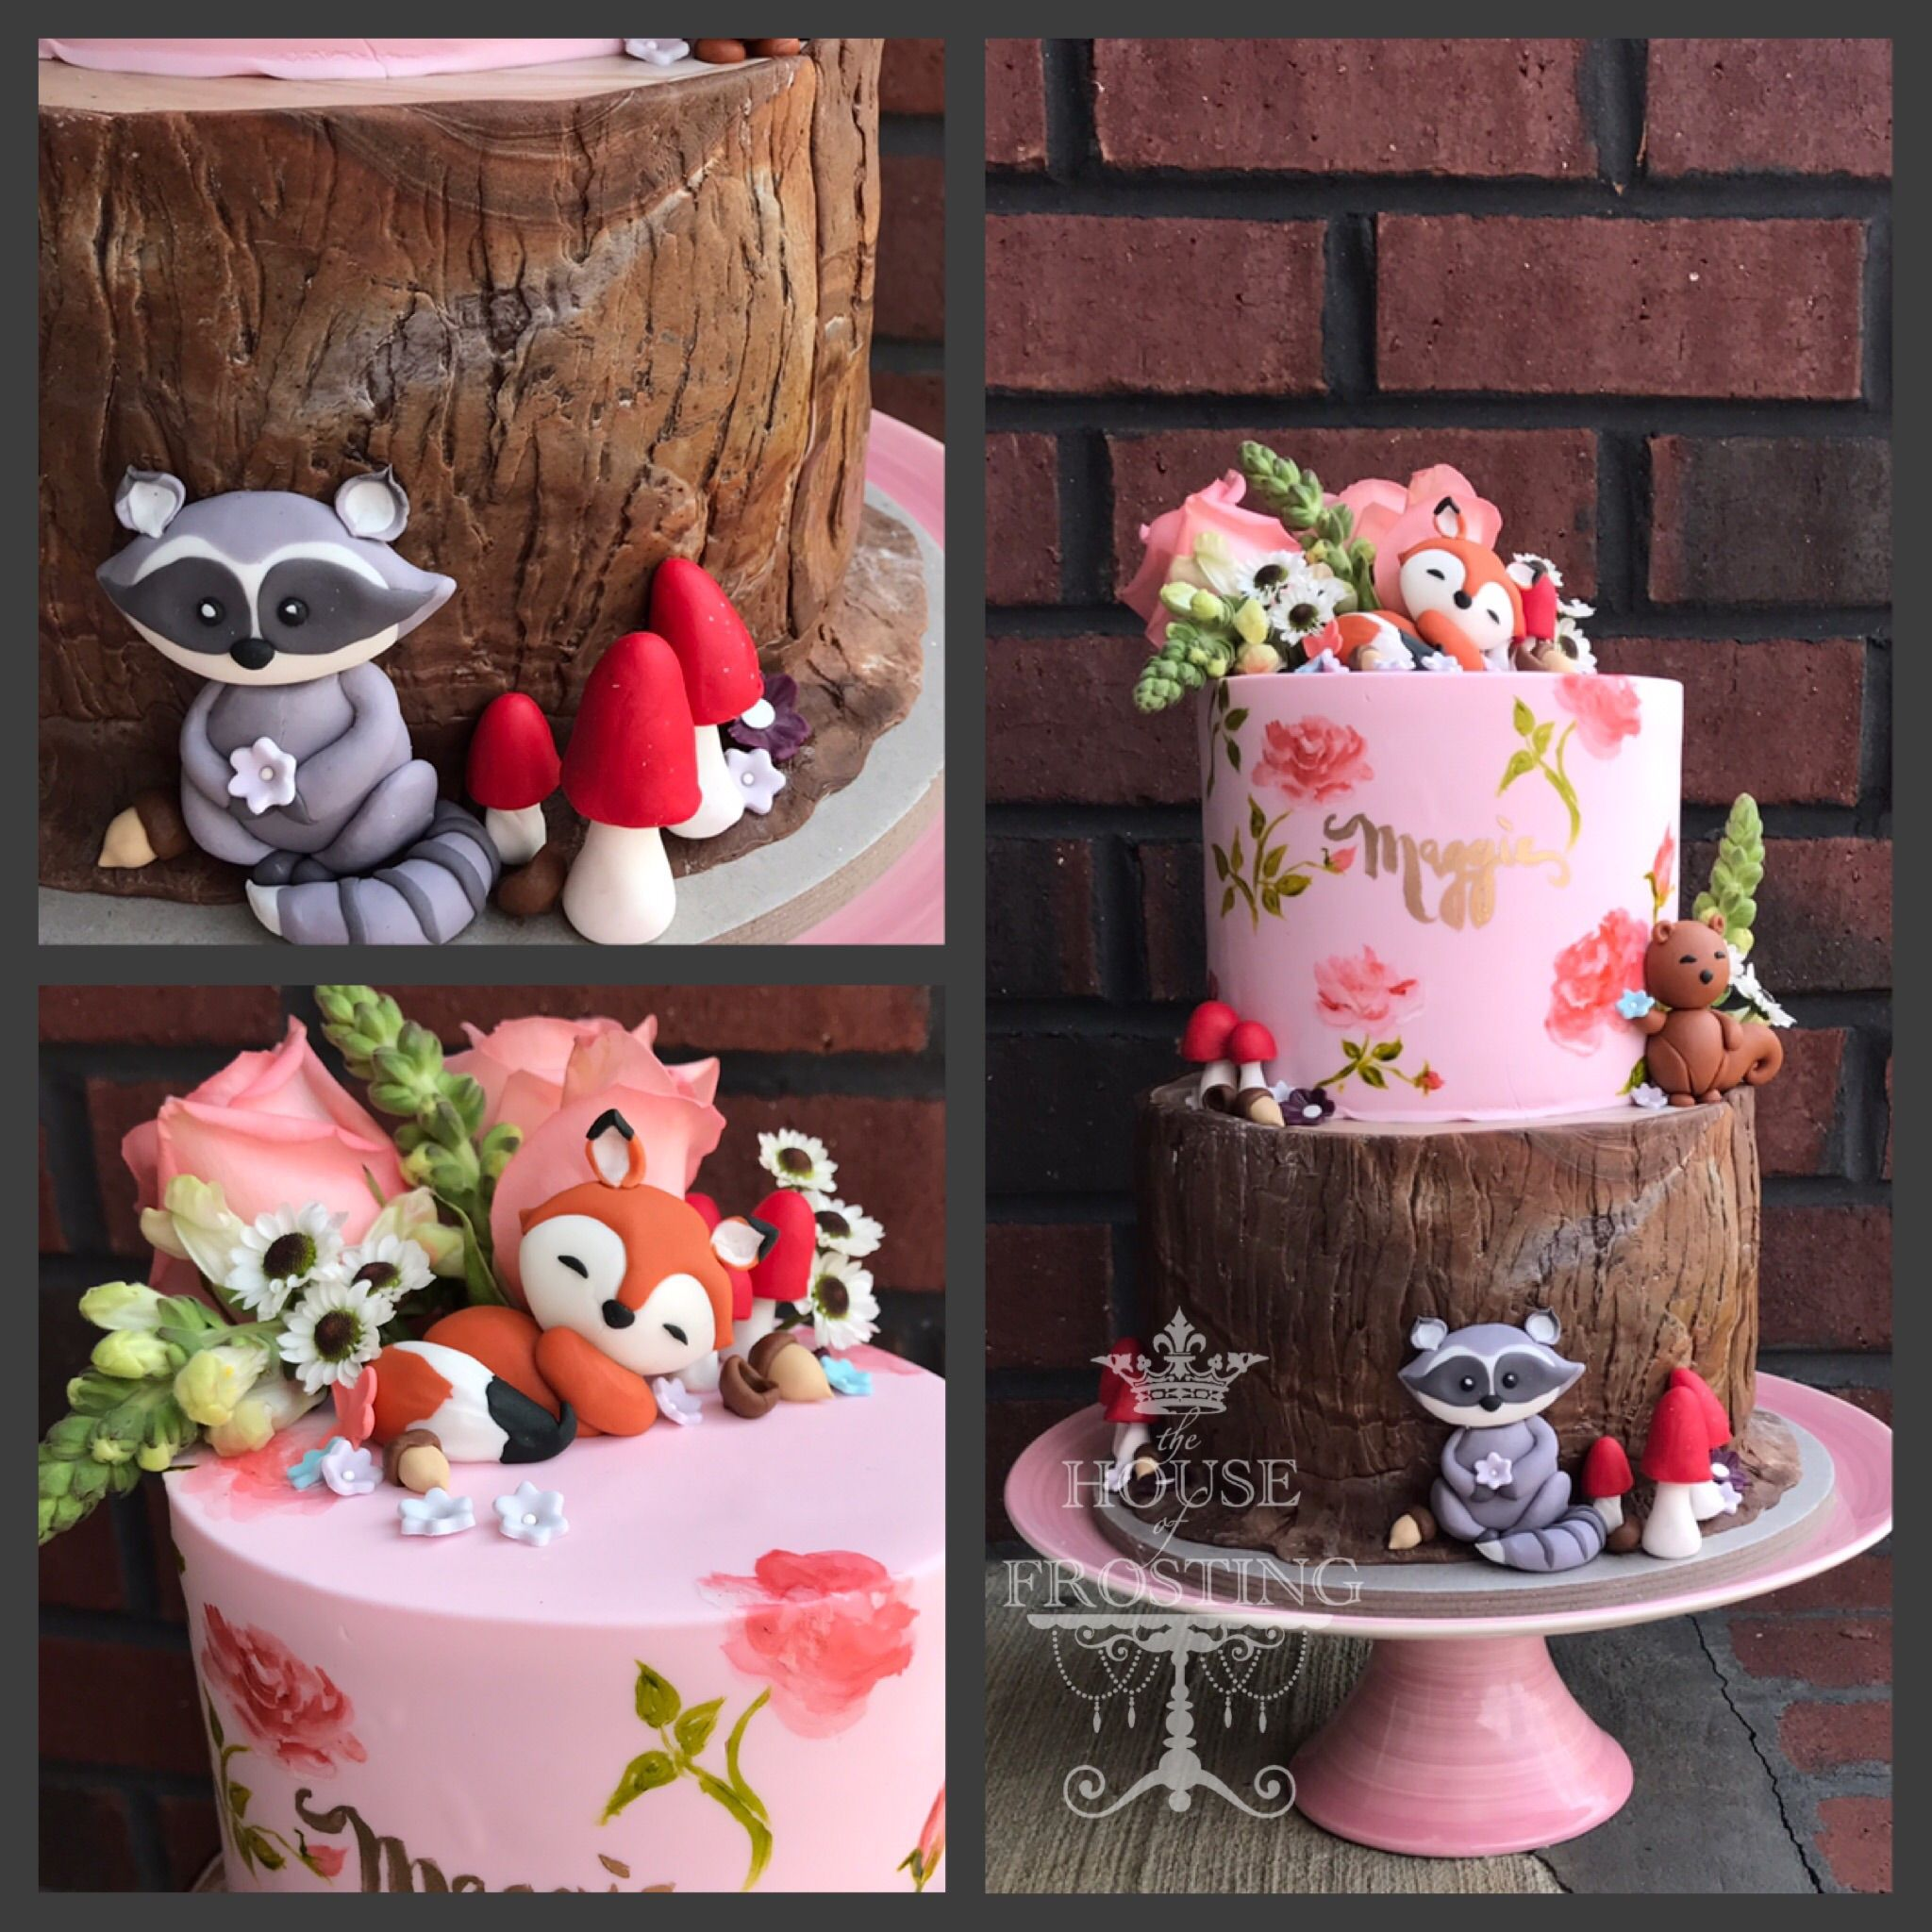 44+ Baby girl baby shower cakes ideas inspirations